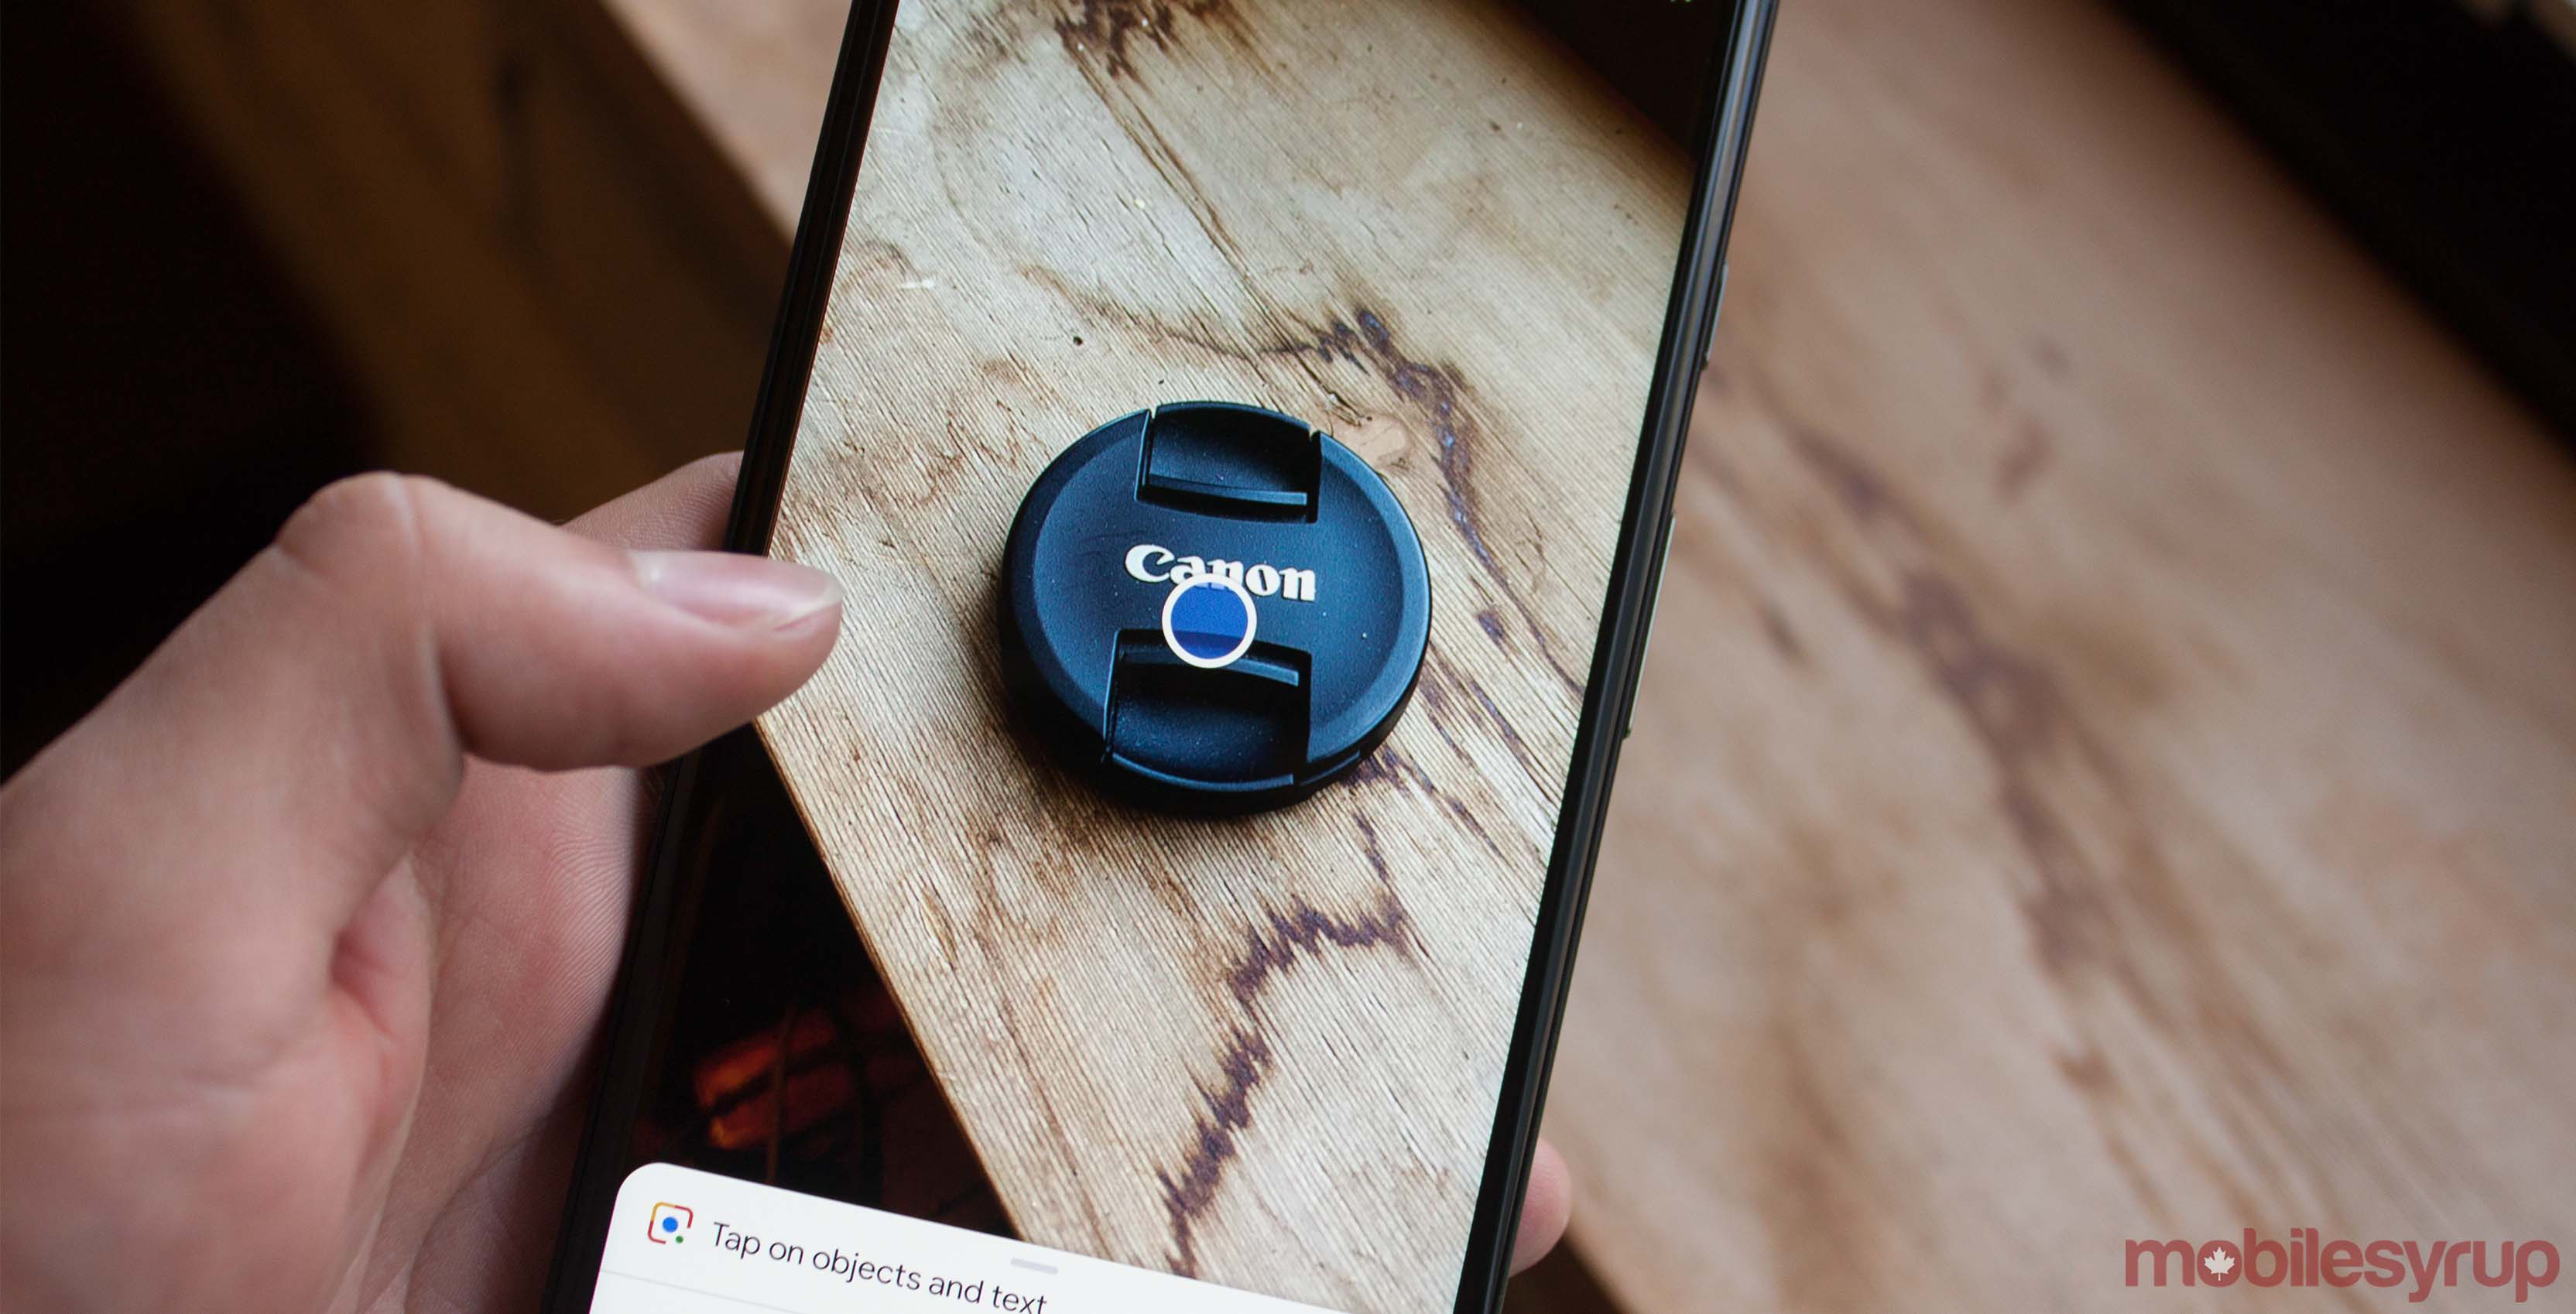 Google Camera app on Pixel 4 can scan documents, translate or copy text